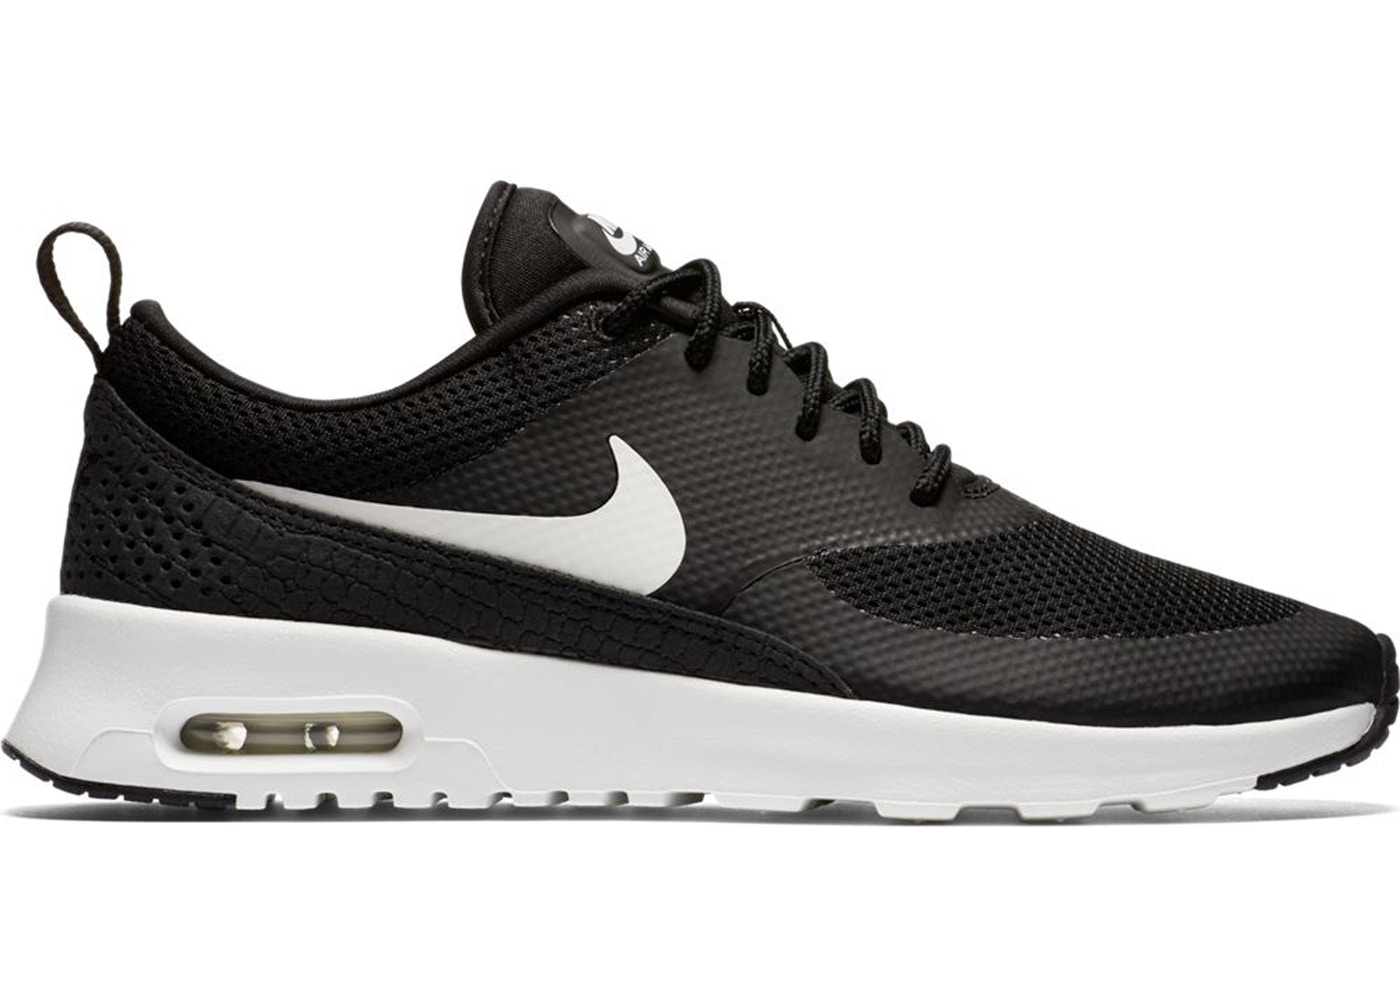 Air Max Thea Black White (W) - 599409-020